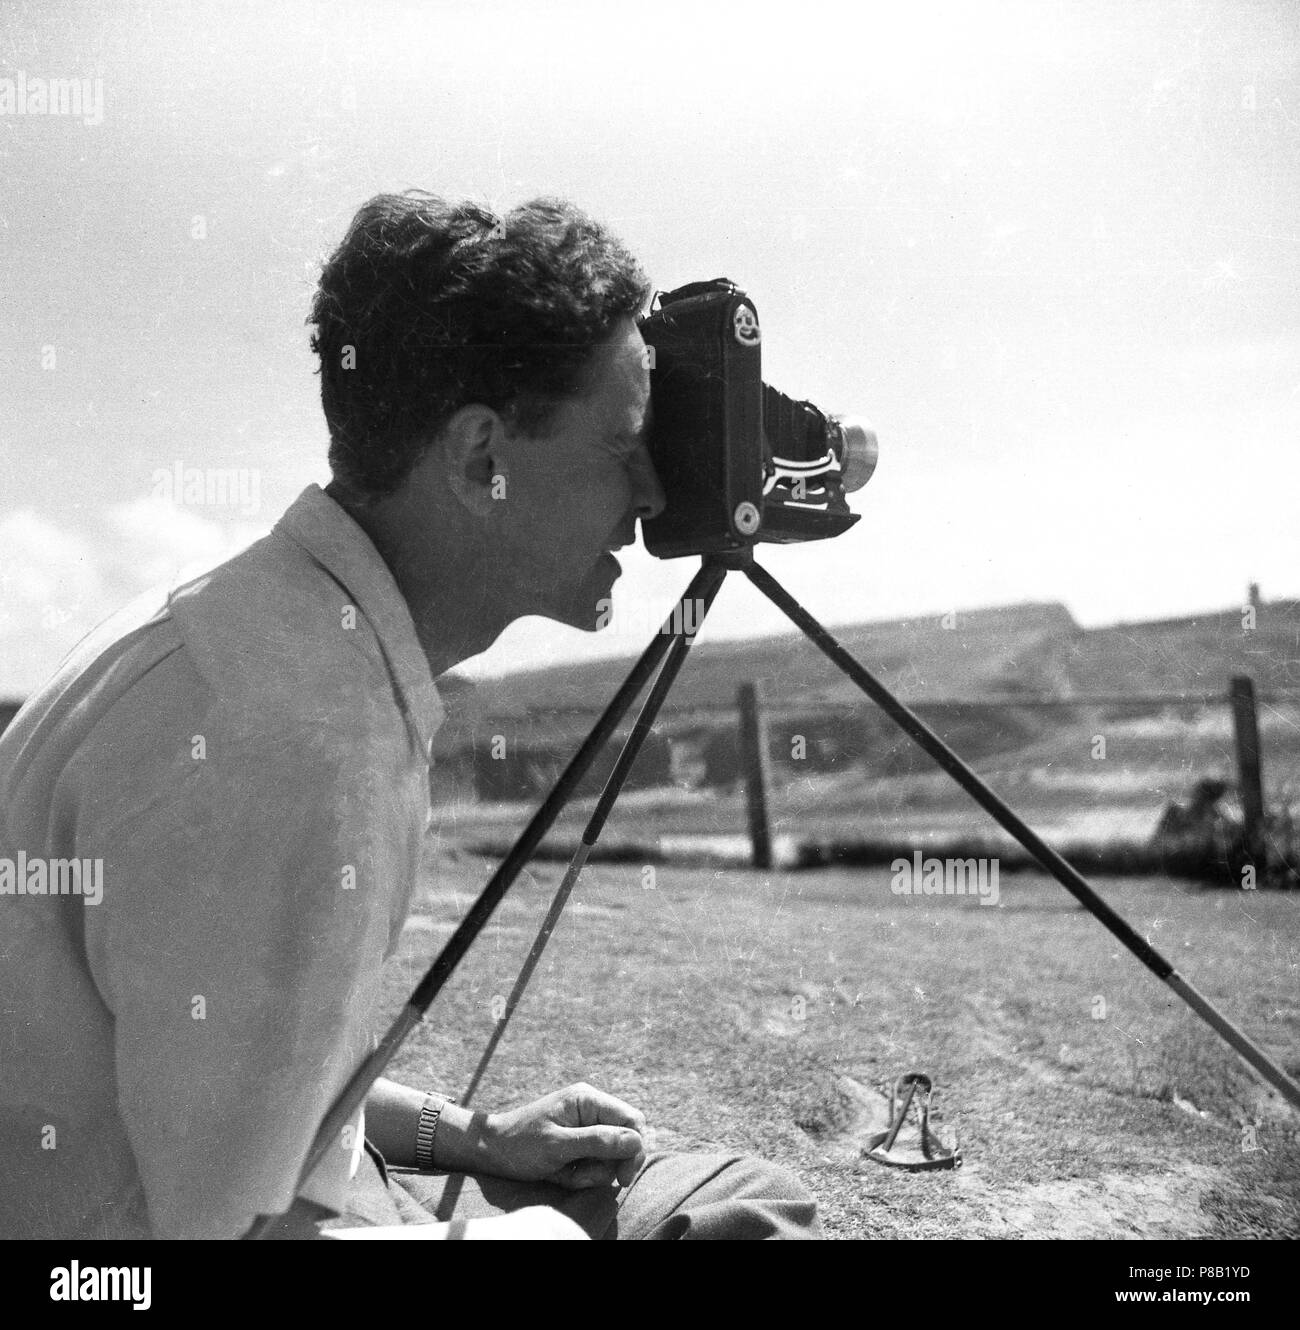 1950s, historical, man taking a photograph outside with a folding